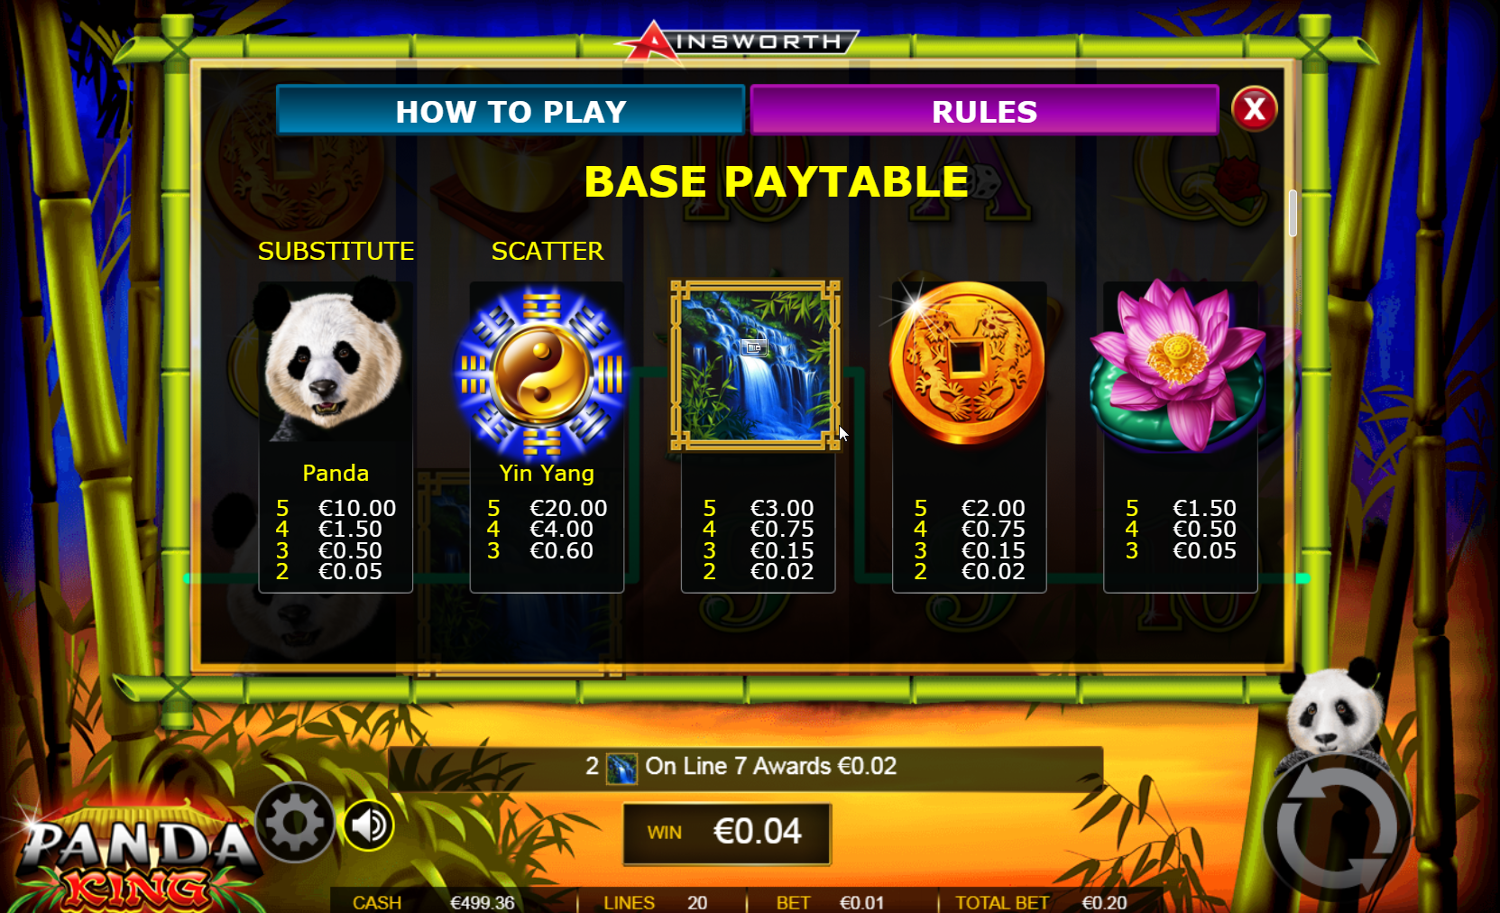 Panda King's base game paytable